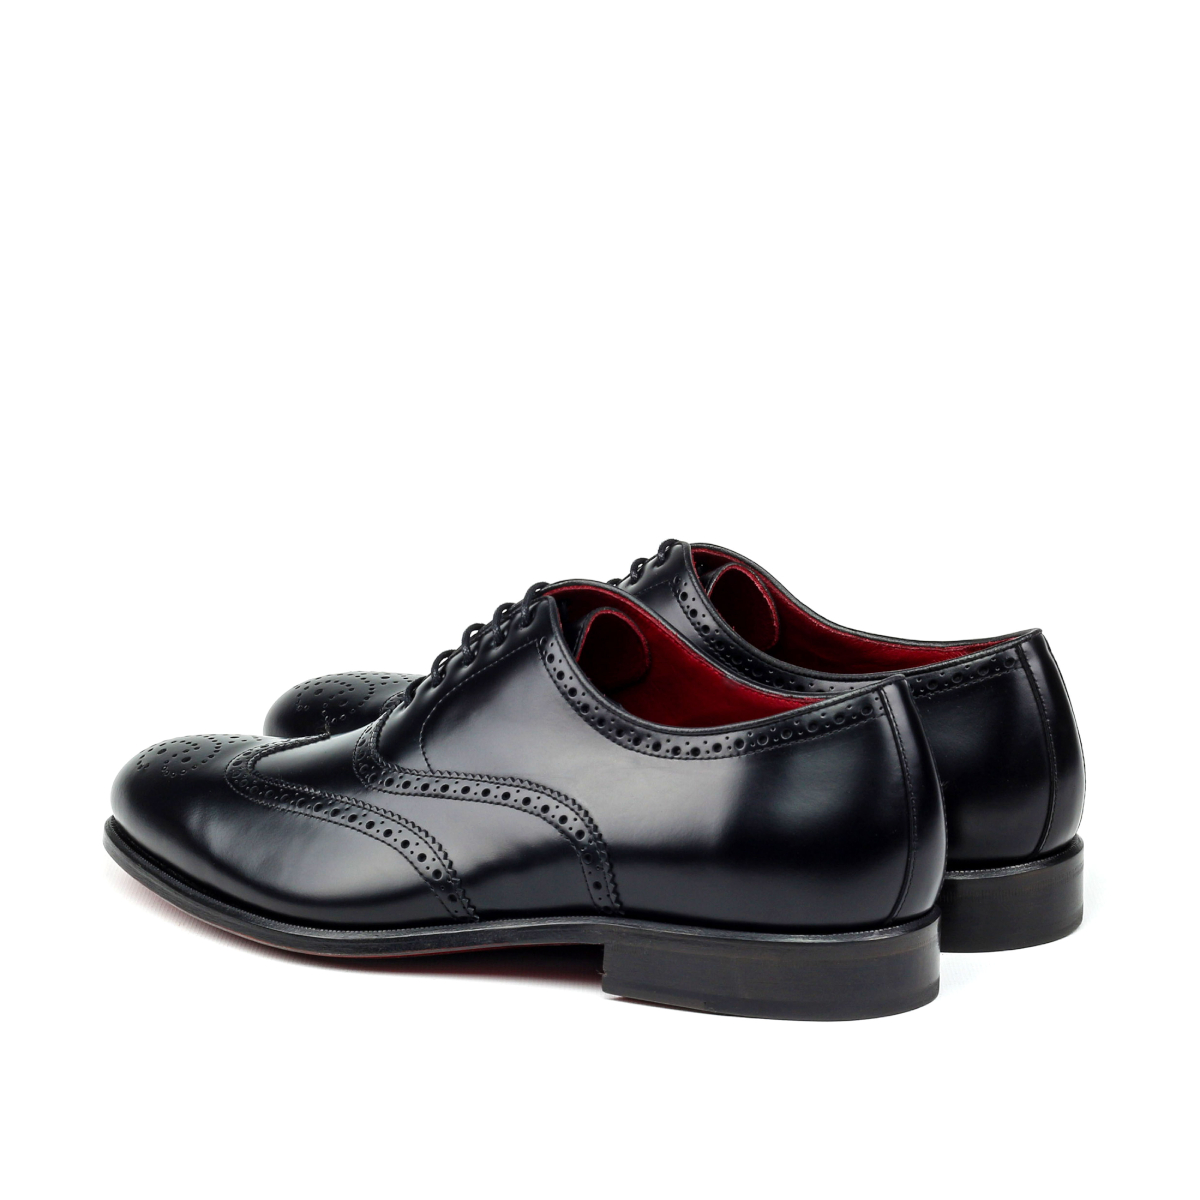 Black hand polished Oxford